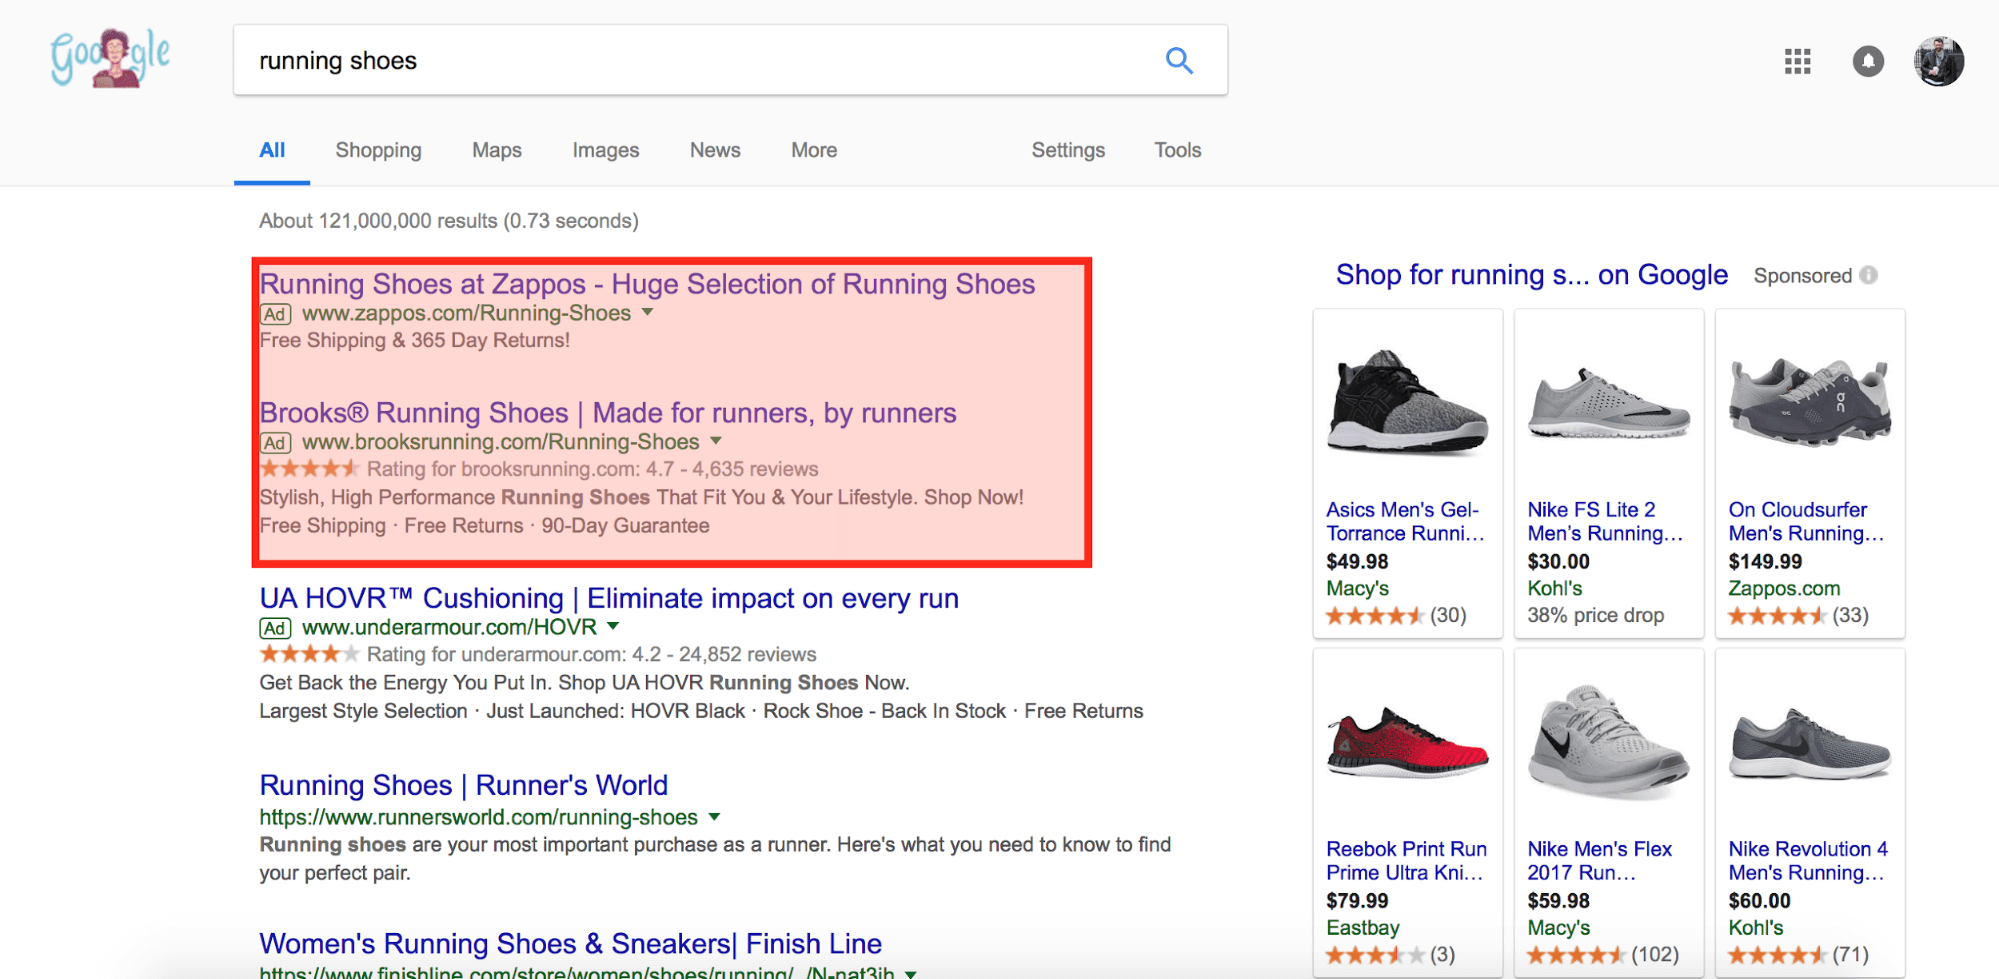 087decd121672 google-search-result-with-ads-for-running-shoes - We re Here To Help ...